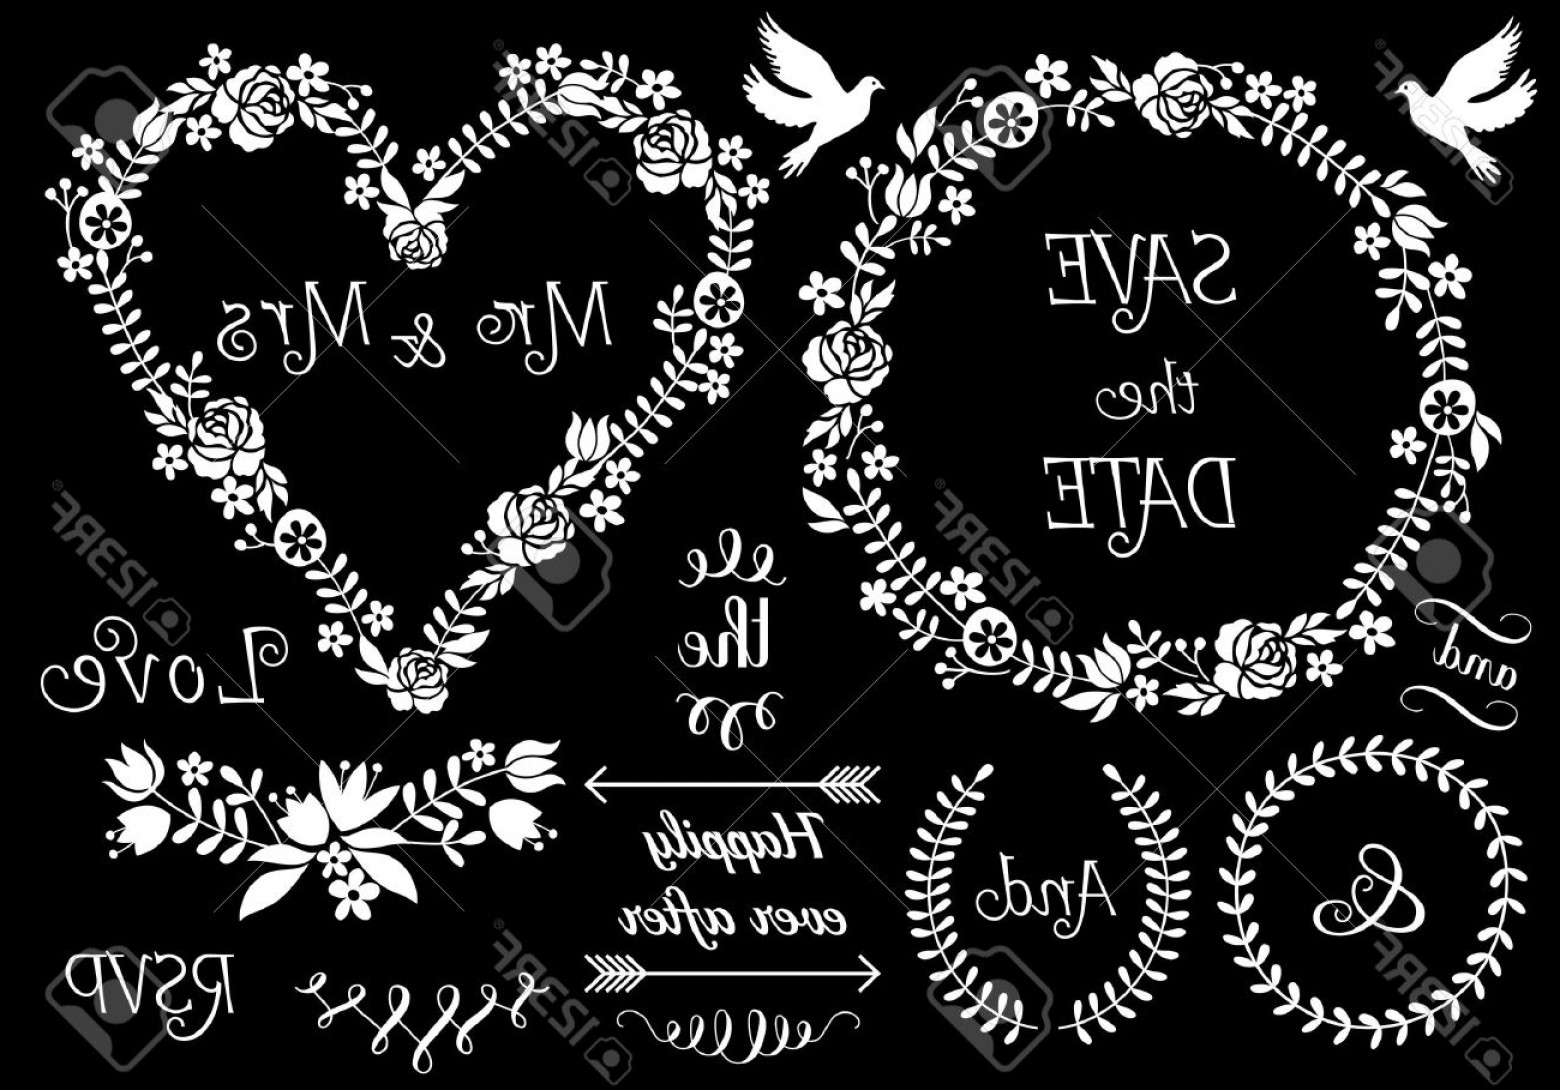 Floral Laurel Wreath Vector: Photostock Vector White Floral Wedding Frames And Laurel Wreath Vector Set On Chalkboard